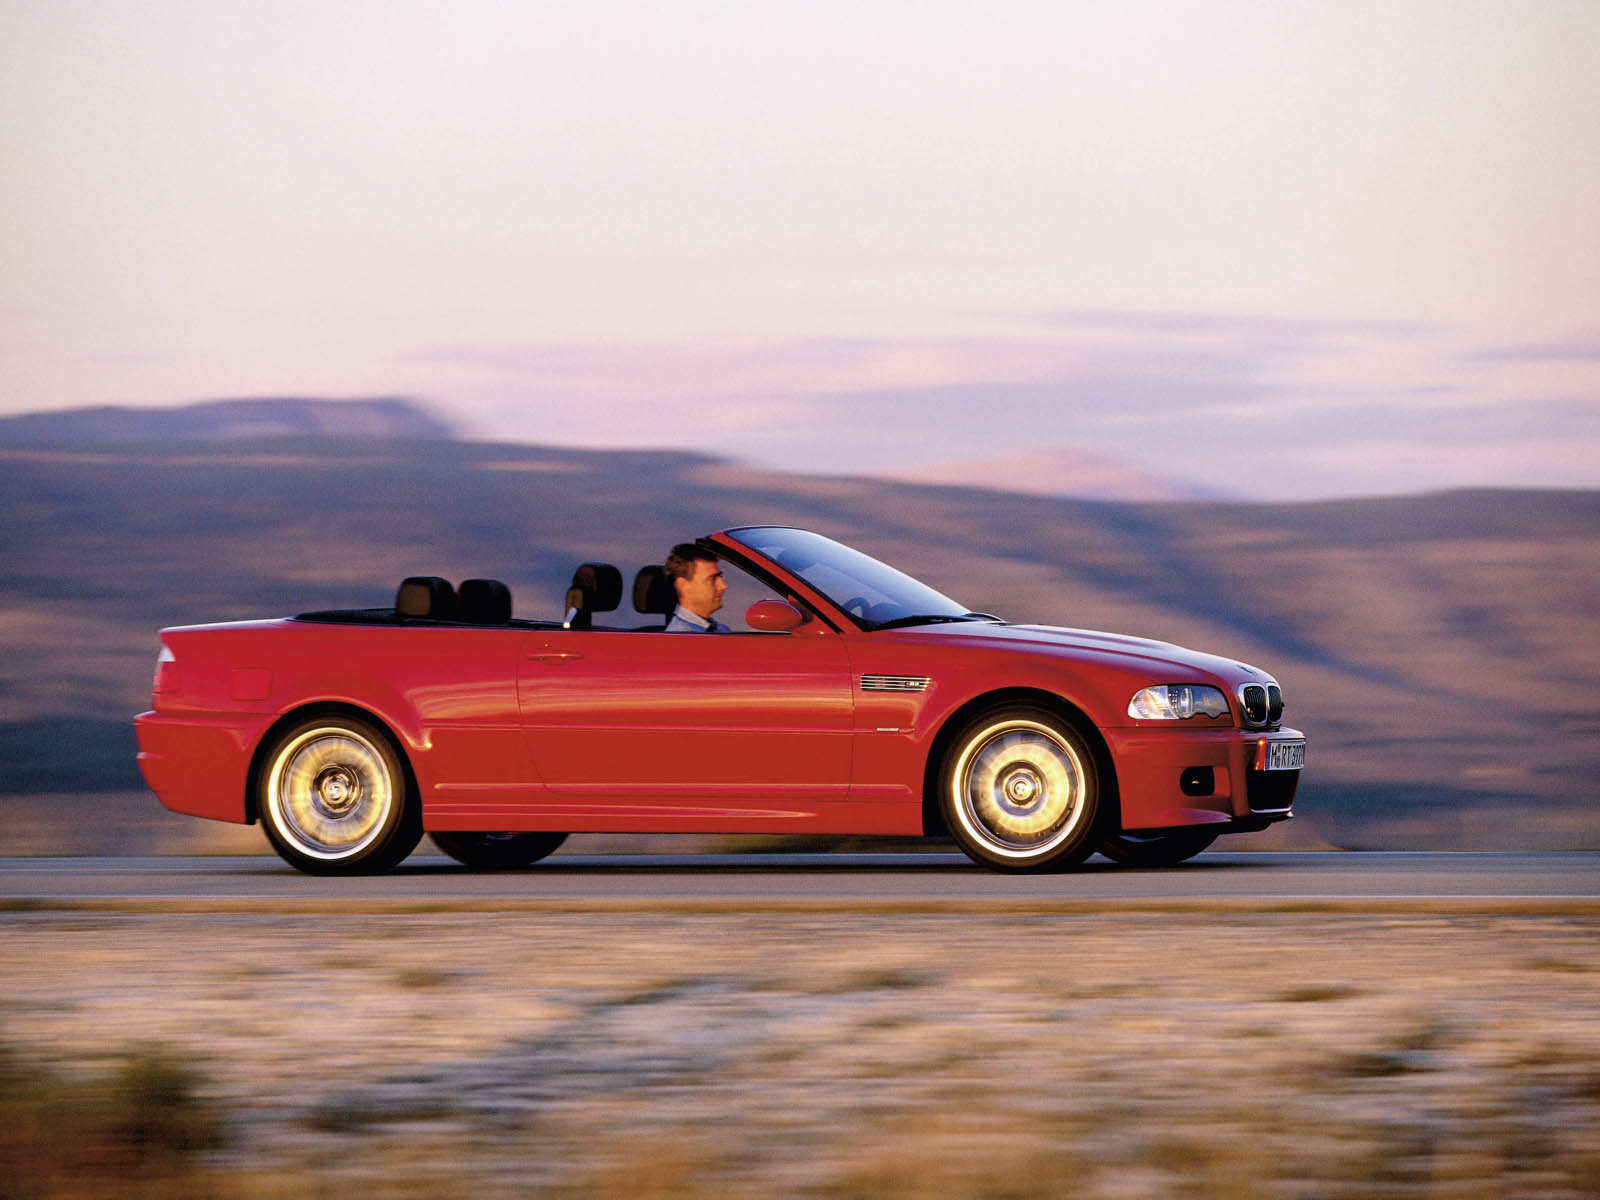 bmw m3 e46 convertible picture 10235 bmw photo gallery. Black Bedroom Furniture Sets. Home Design Ideas